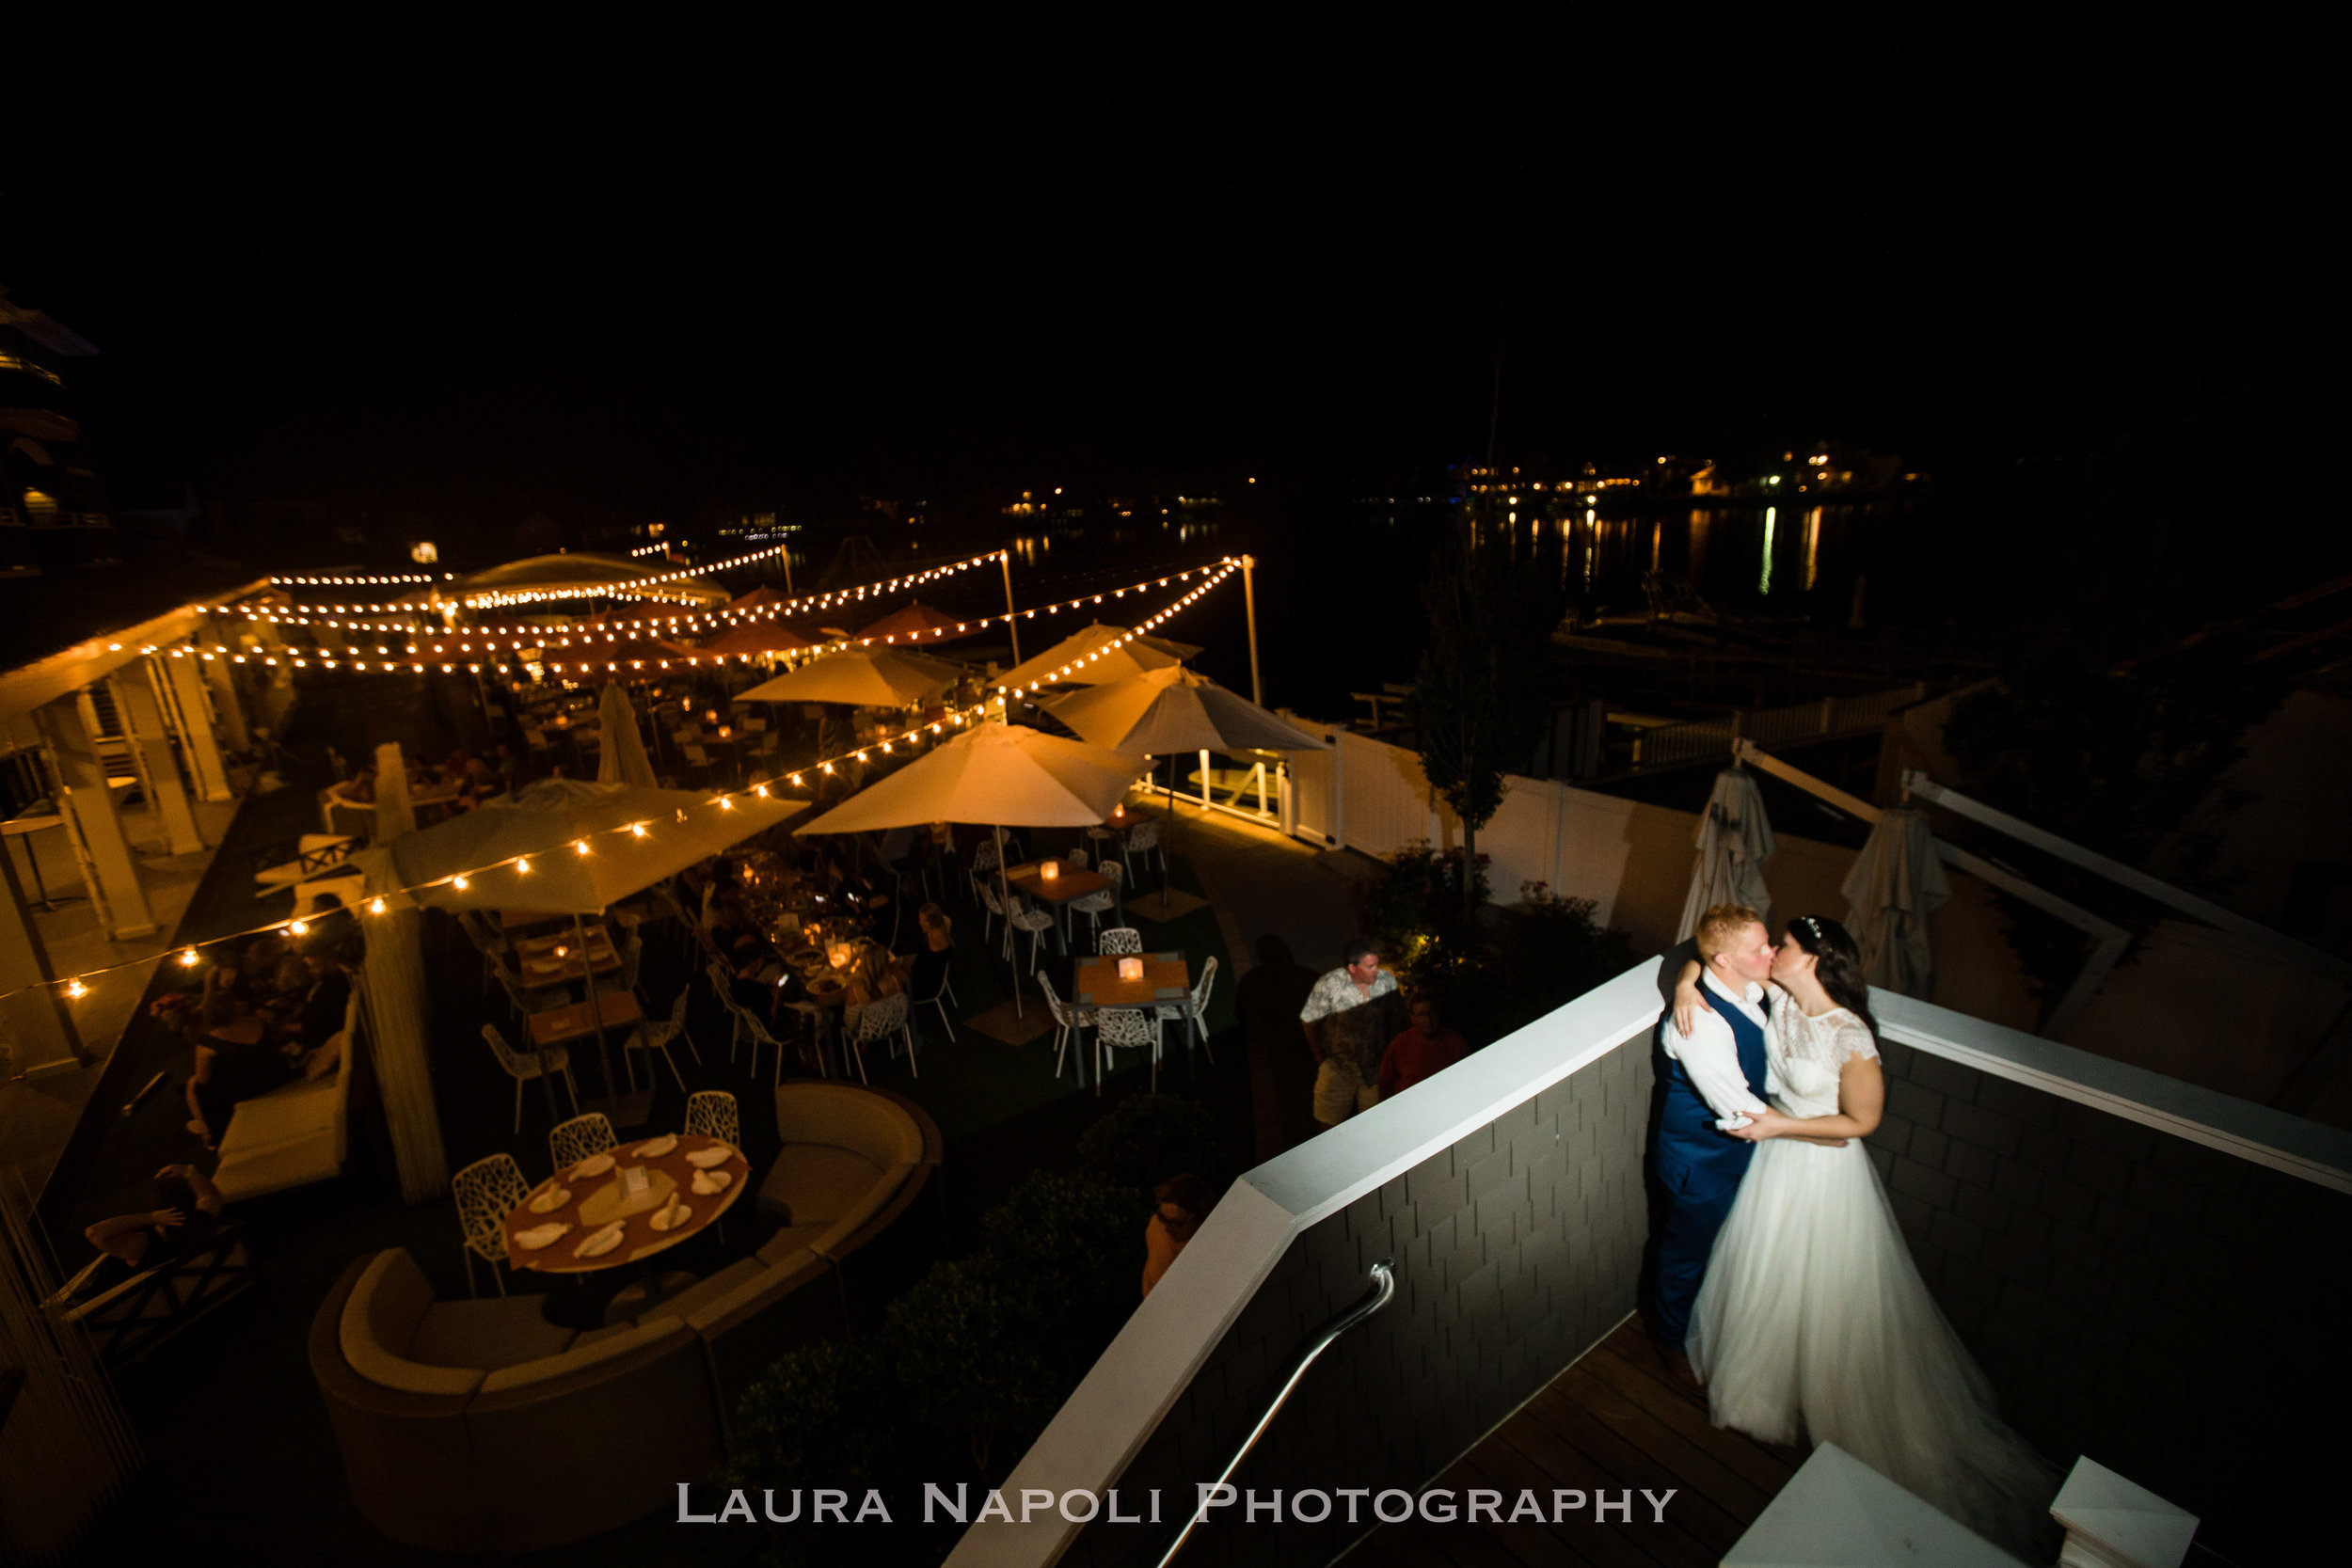 thereedsatshelterhavenwedding-28.jpg